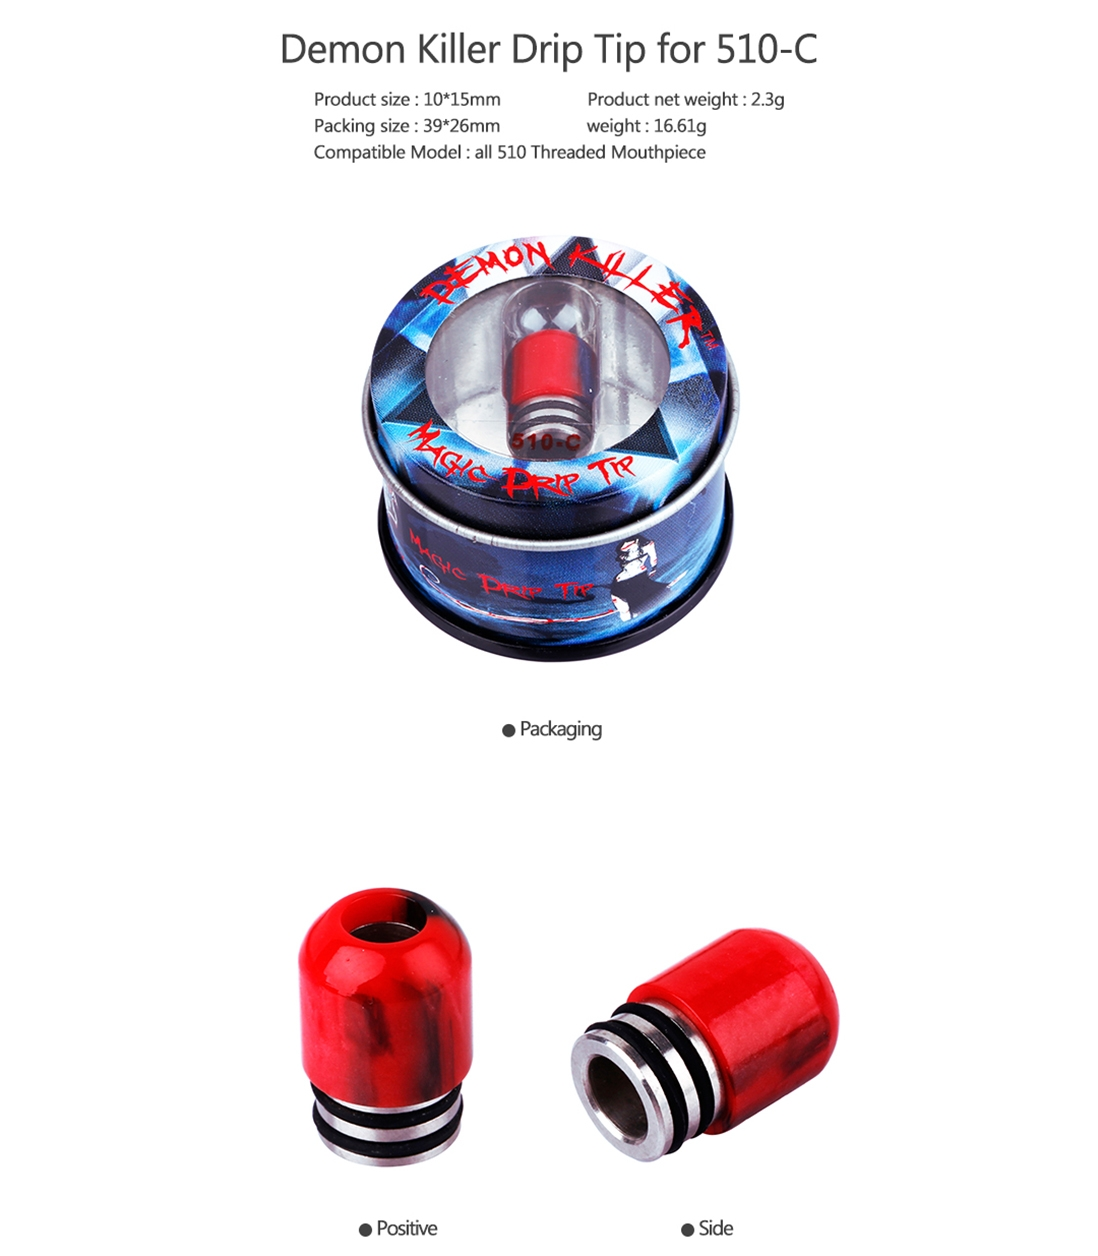 Demon Killer 510-C Resin Drip Tip Parameter